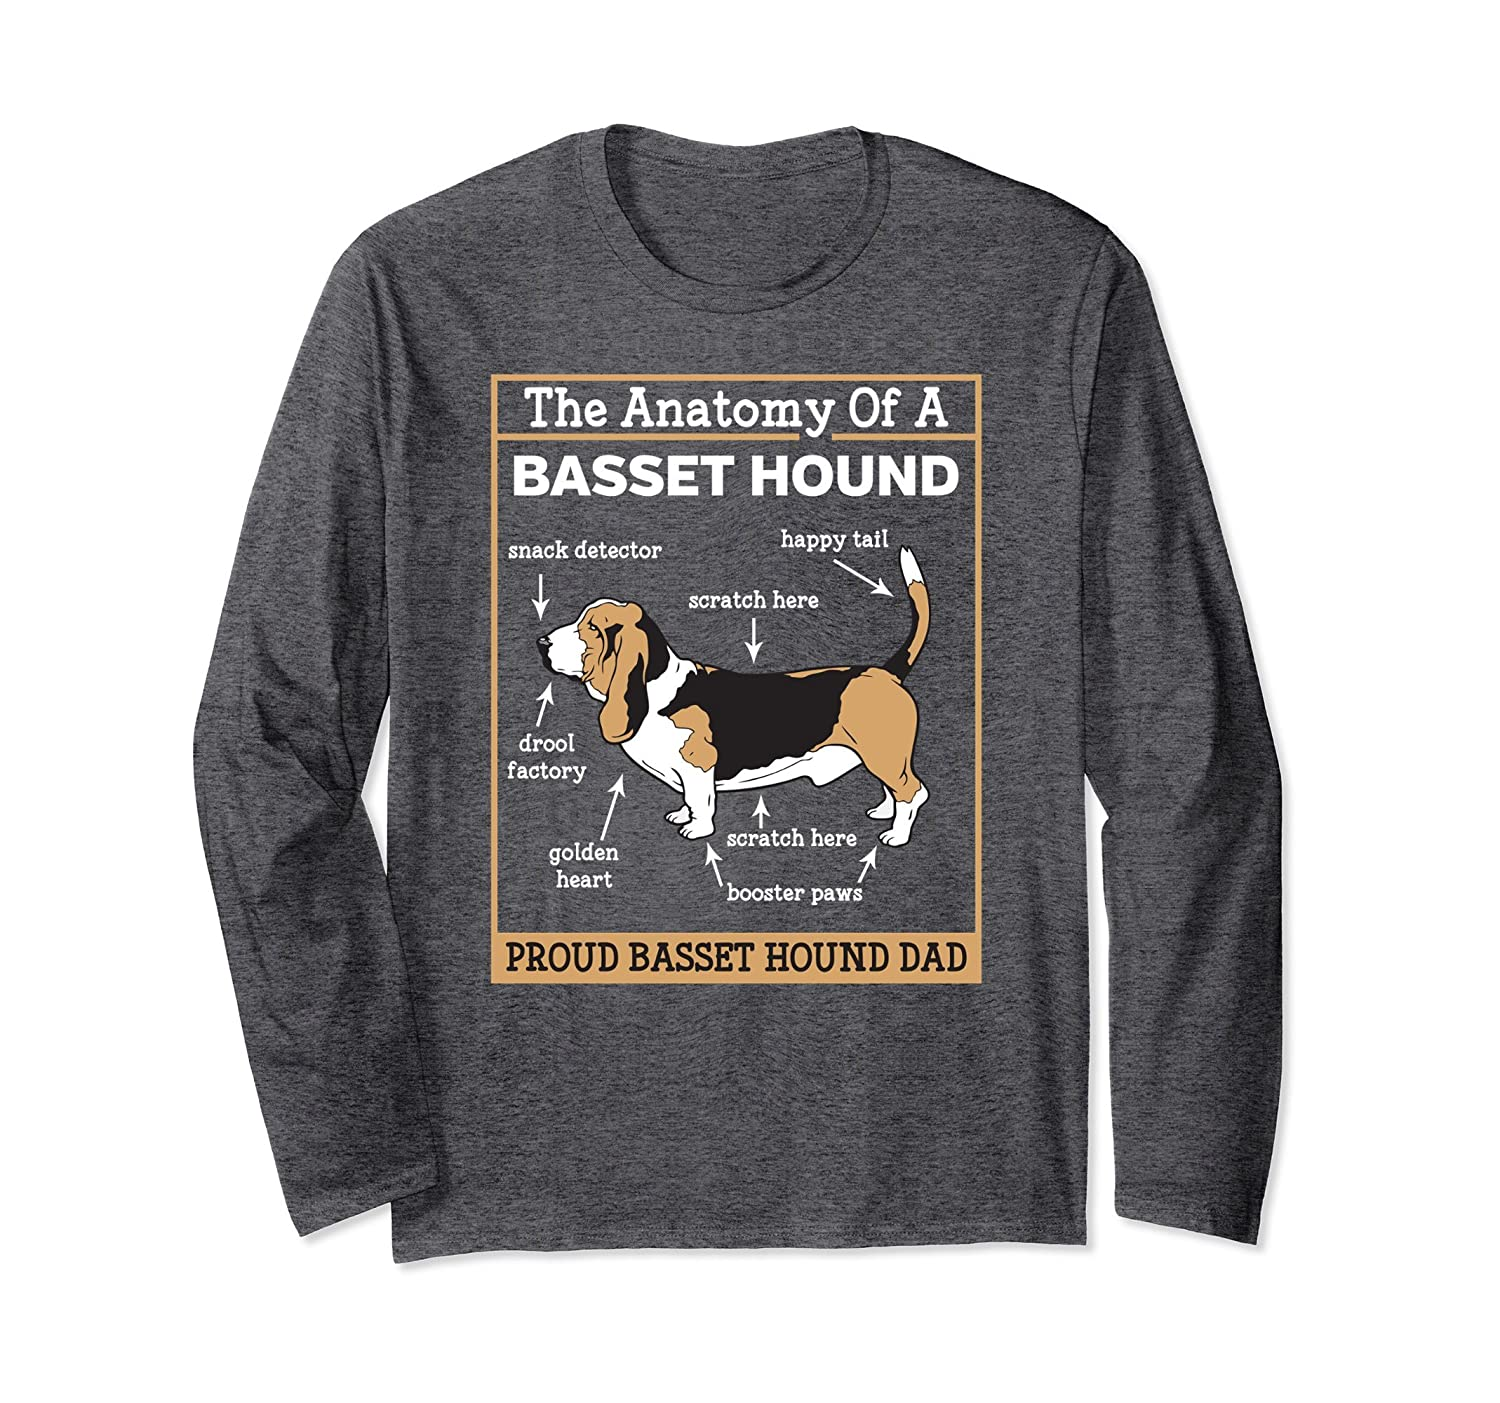 Amazon.com: Anatomy of A Basset Hound Shirt For Fathers Day: Clothing